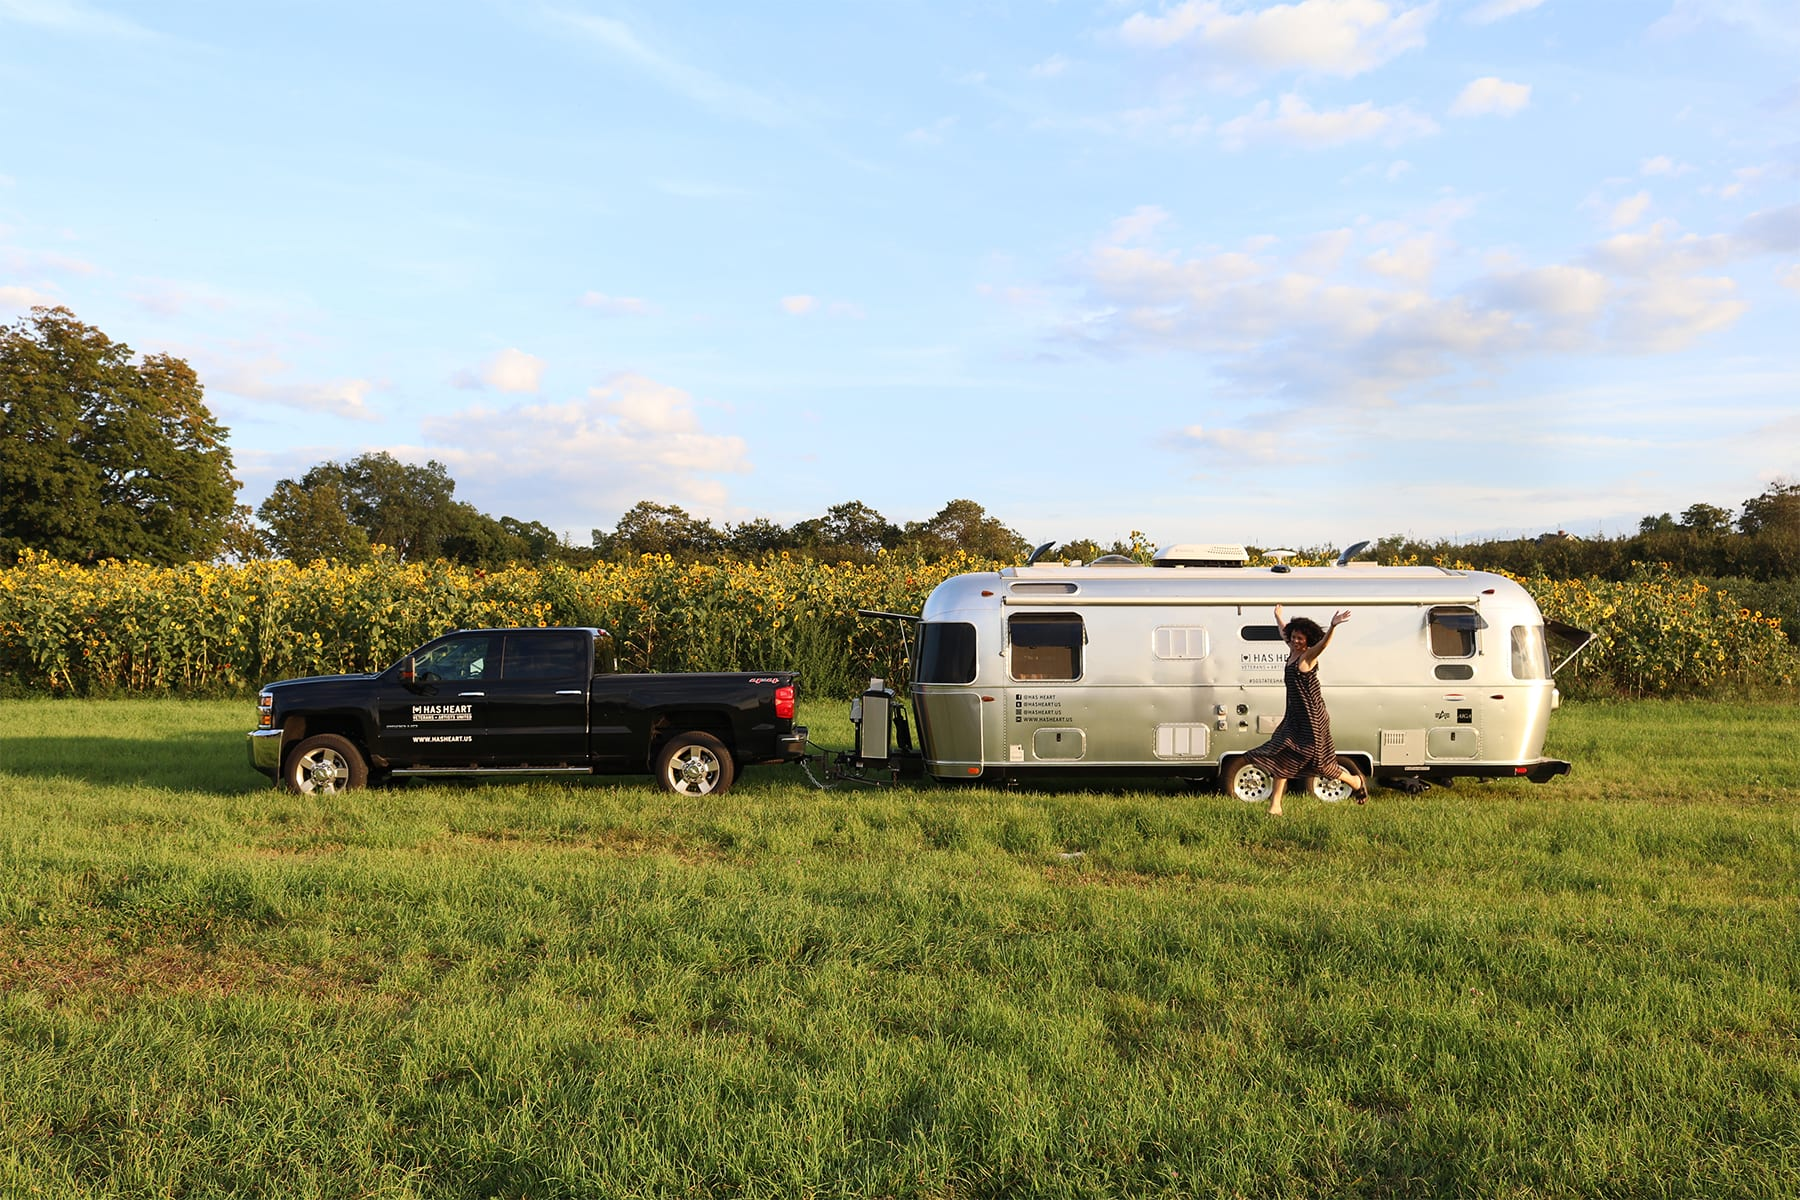 07-CT-journey-airstream-sunflowerfield01.jpg